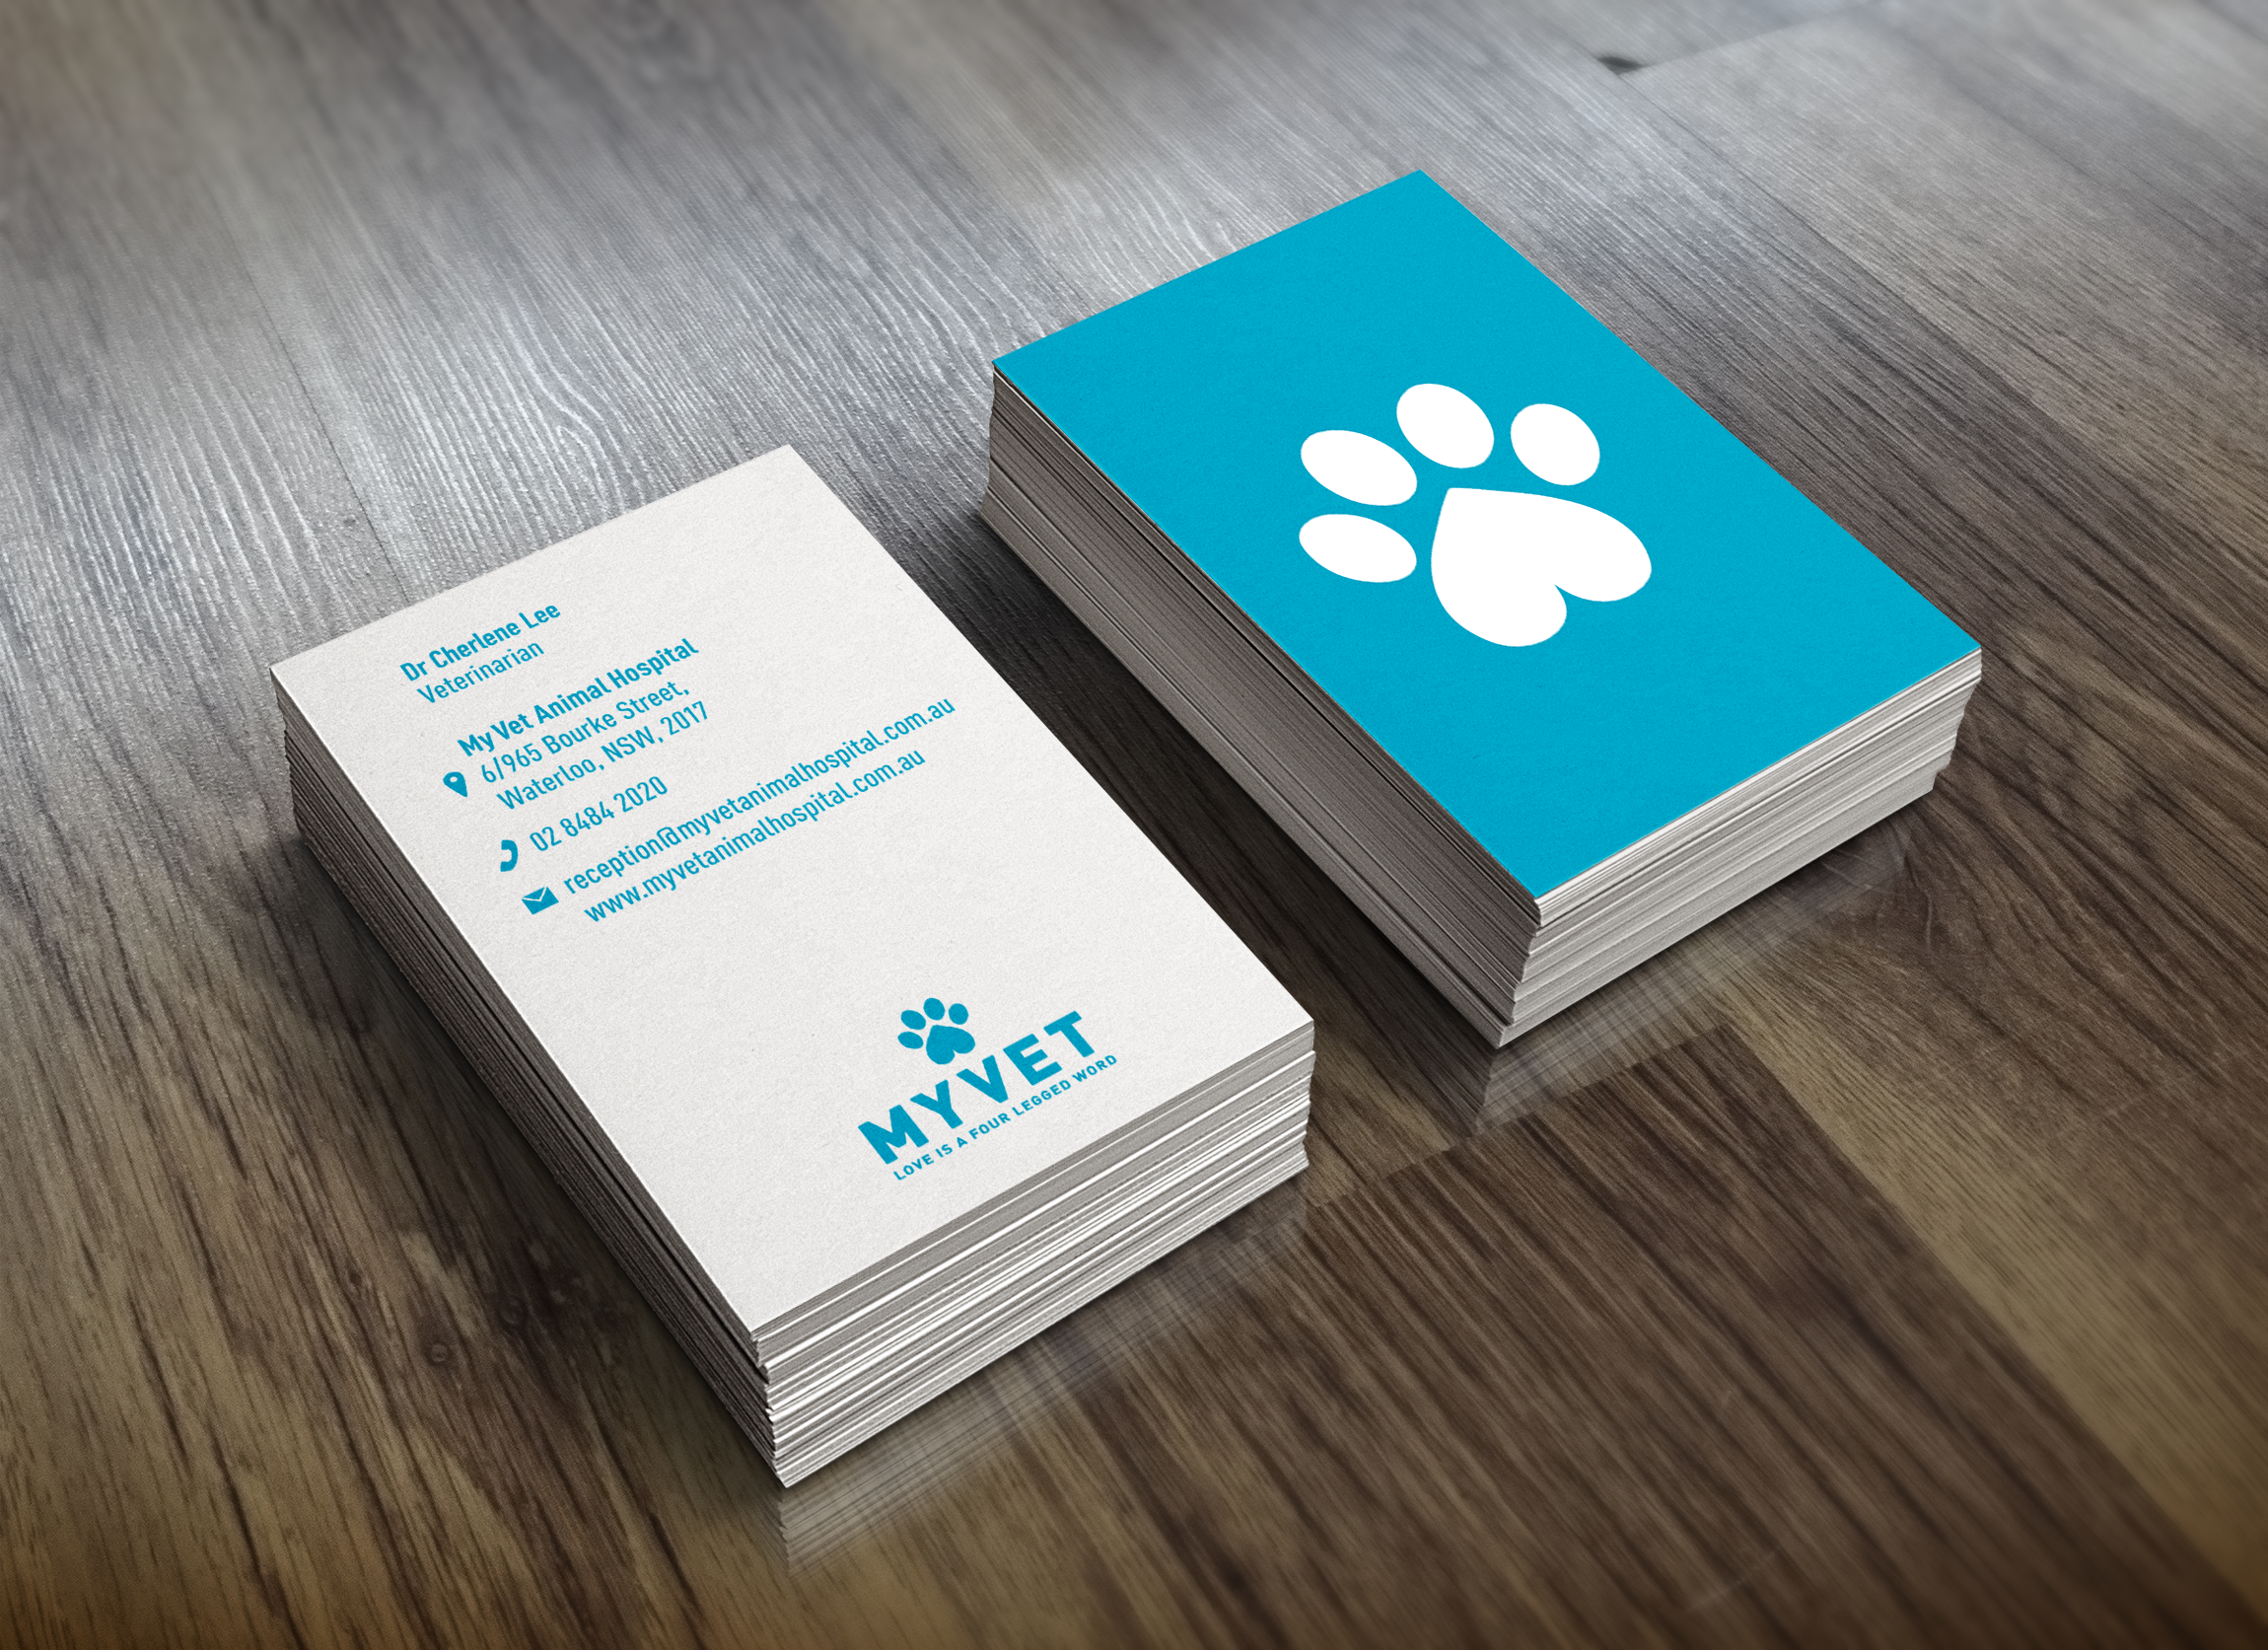 IBS Cards - A Logo Worth Looking At